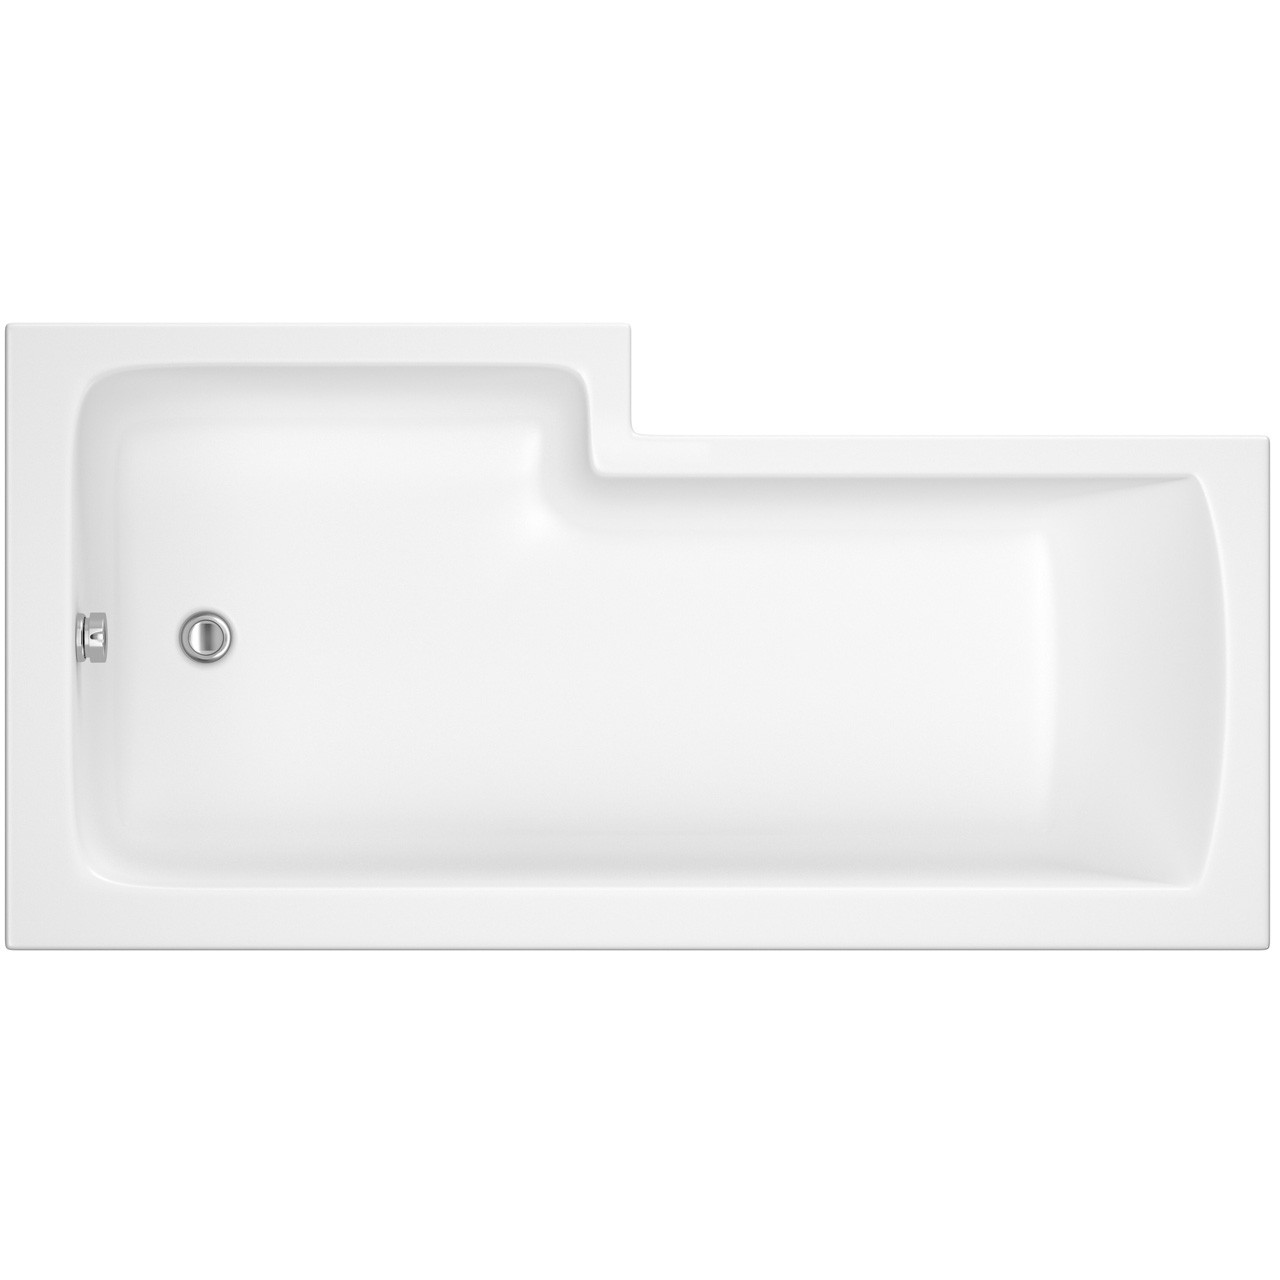 Premier Square Right Hand Shower Bath 1500mm x 850mm - BMBS1585R